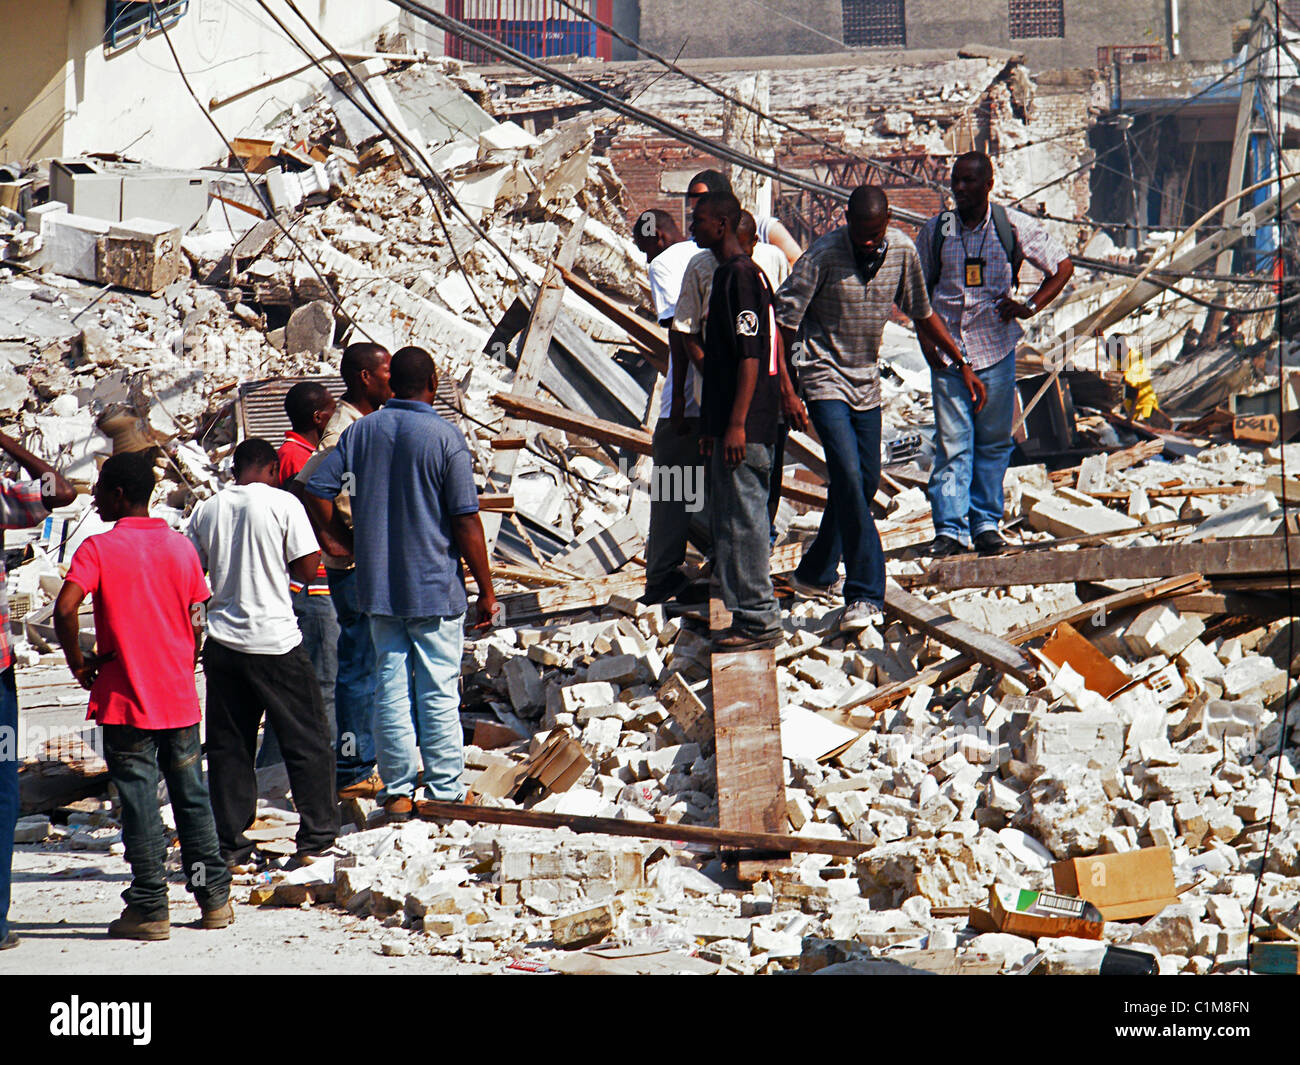 People walking through the ruins of Port au Prince after the Haiti earthquake - Stock Image